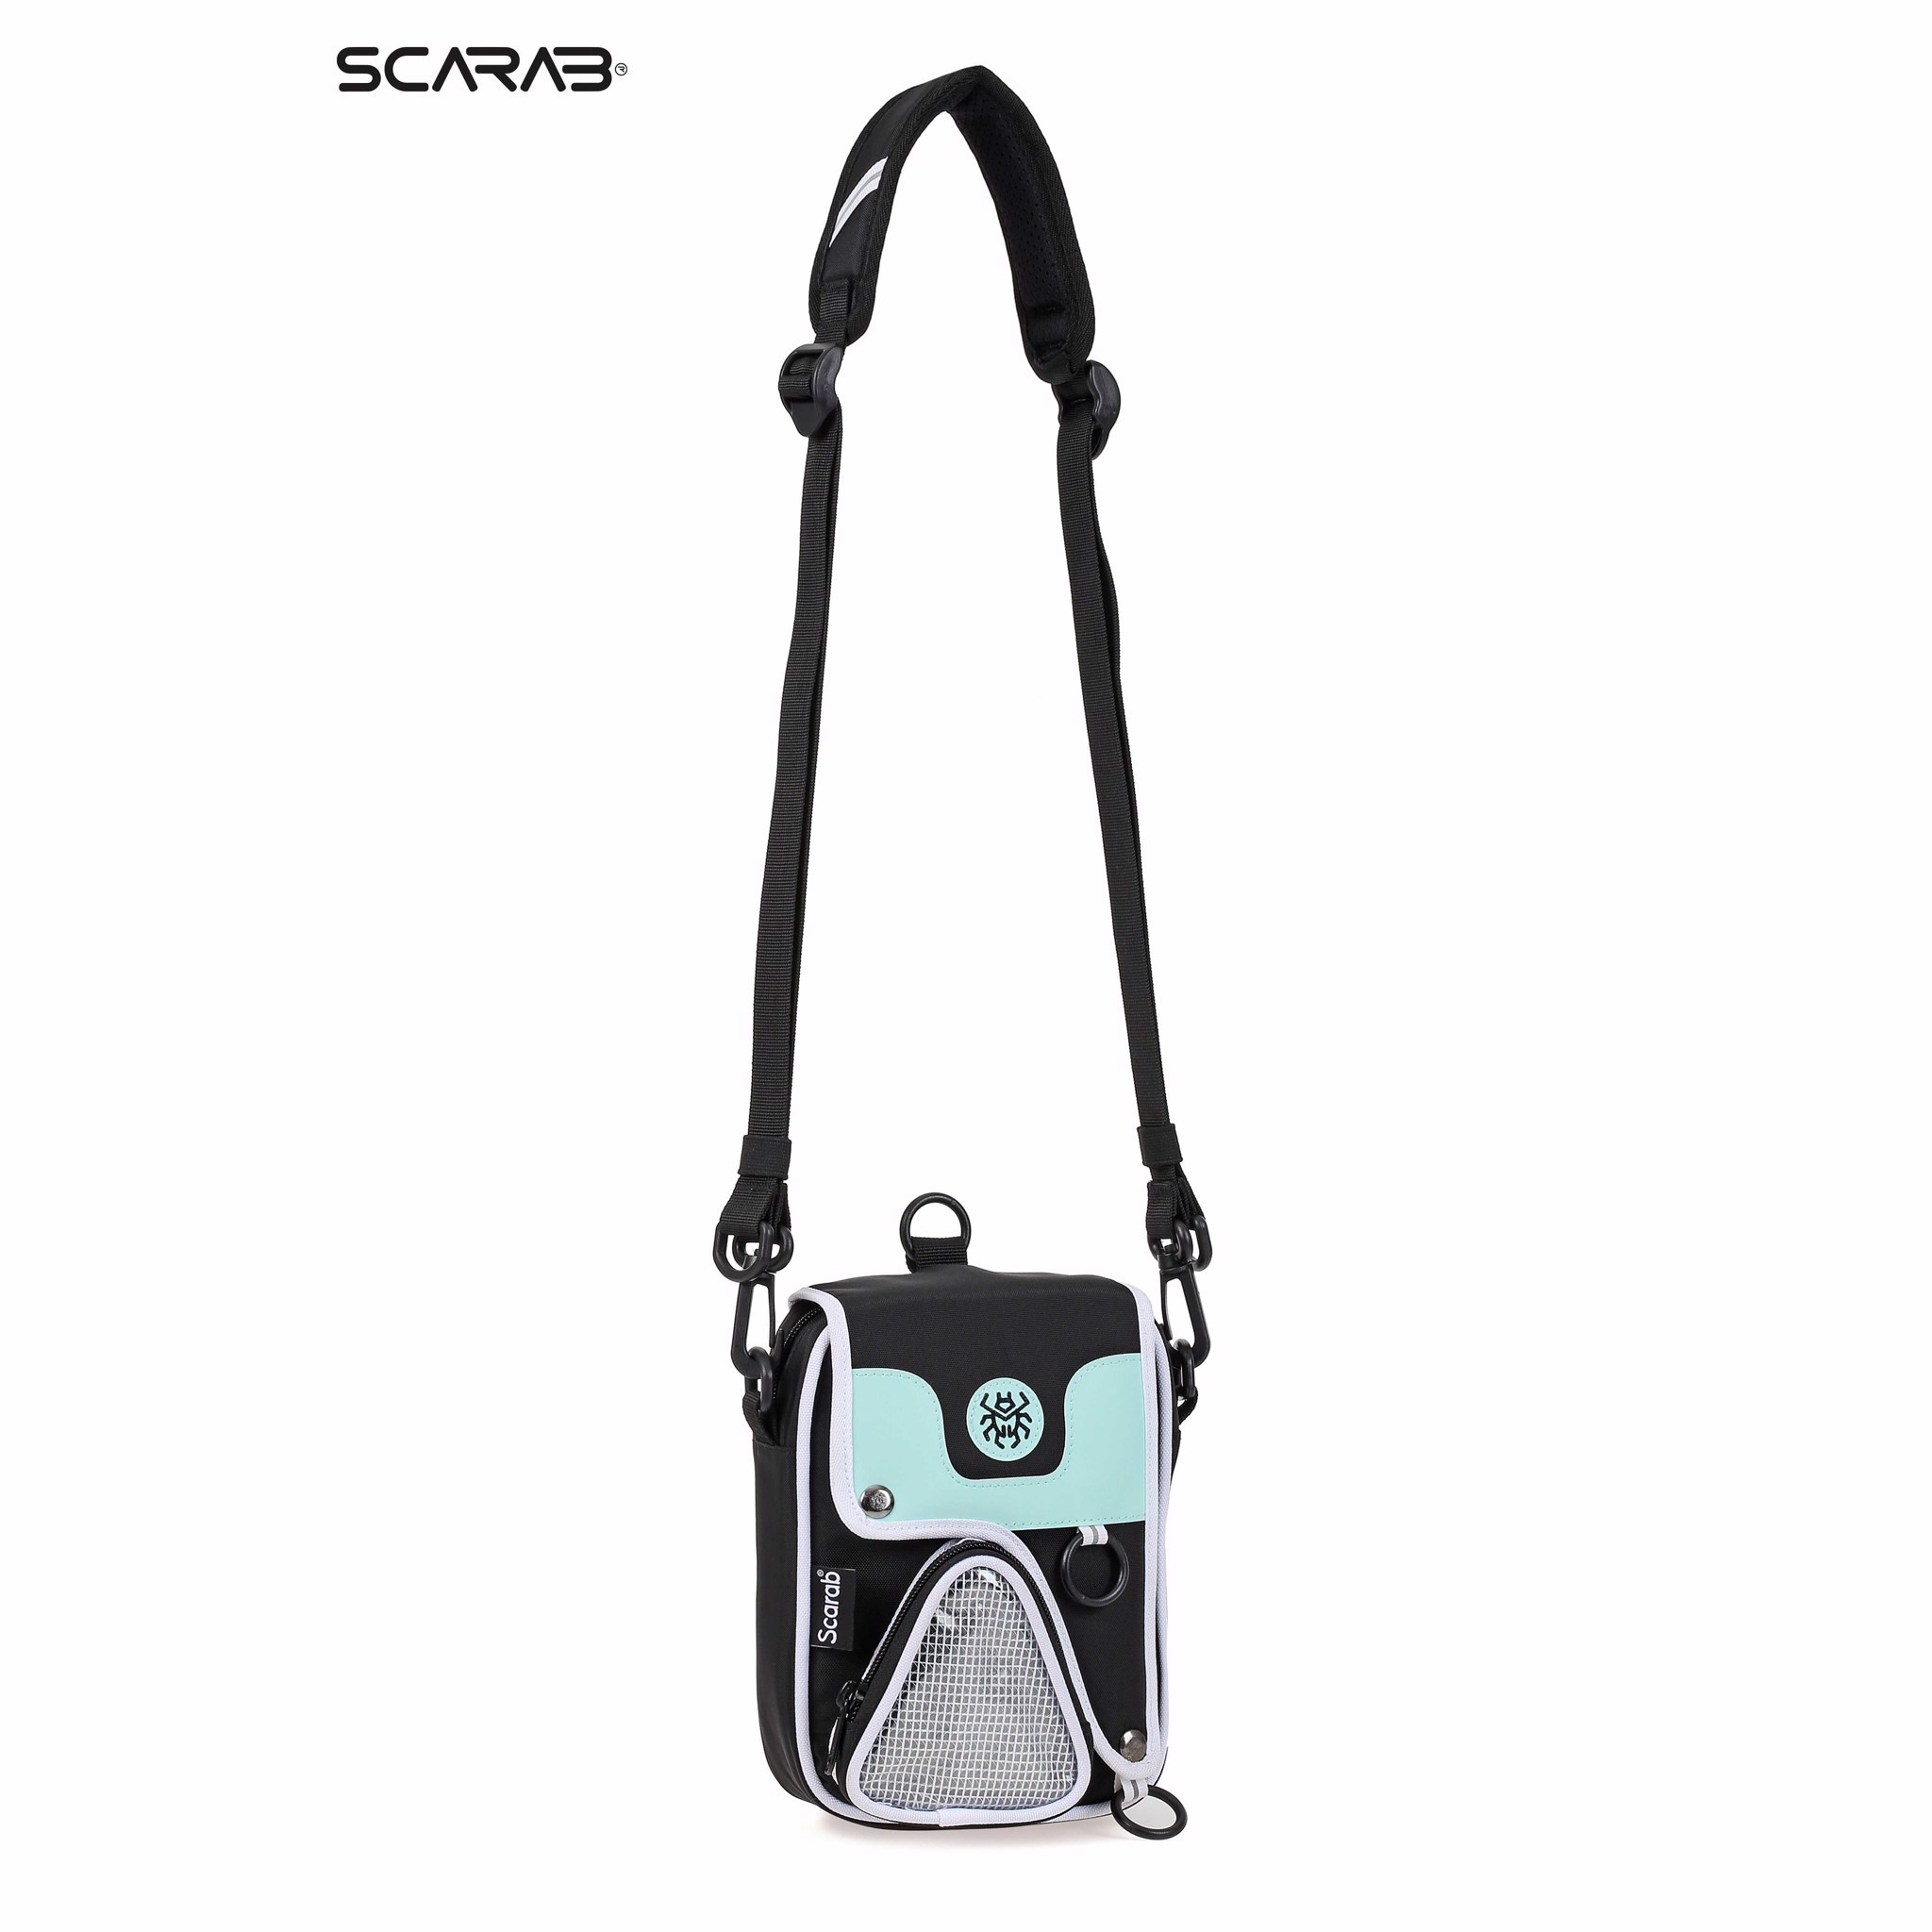 SOLID™ REFLECTIVE POUCH BAG